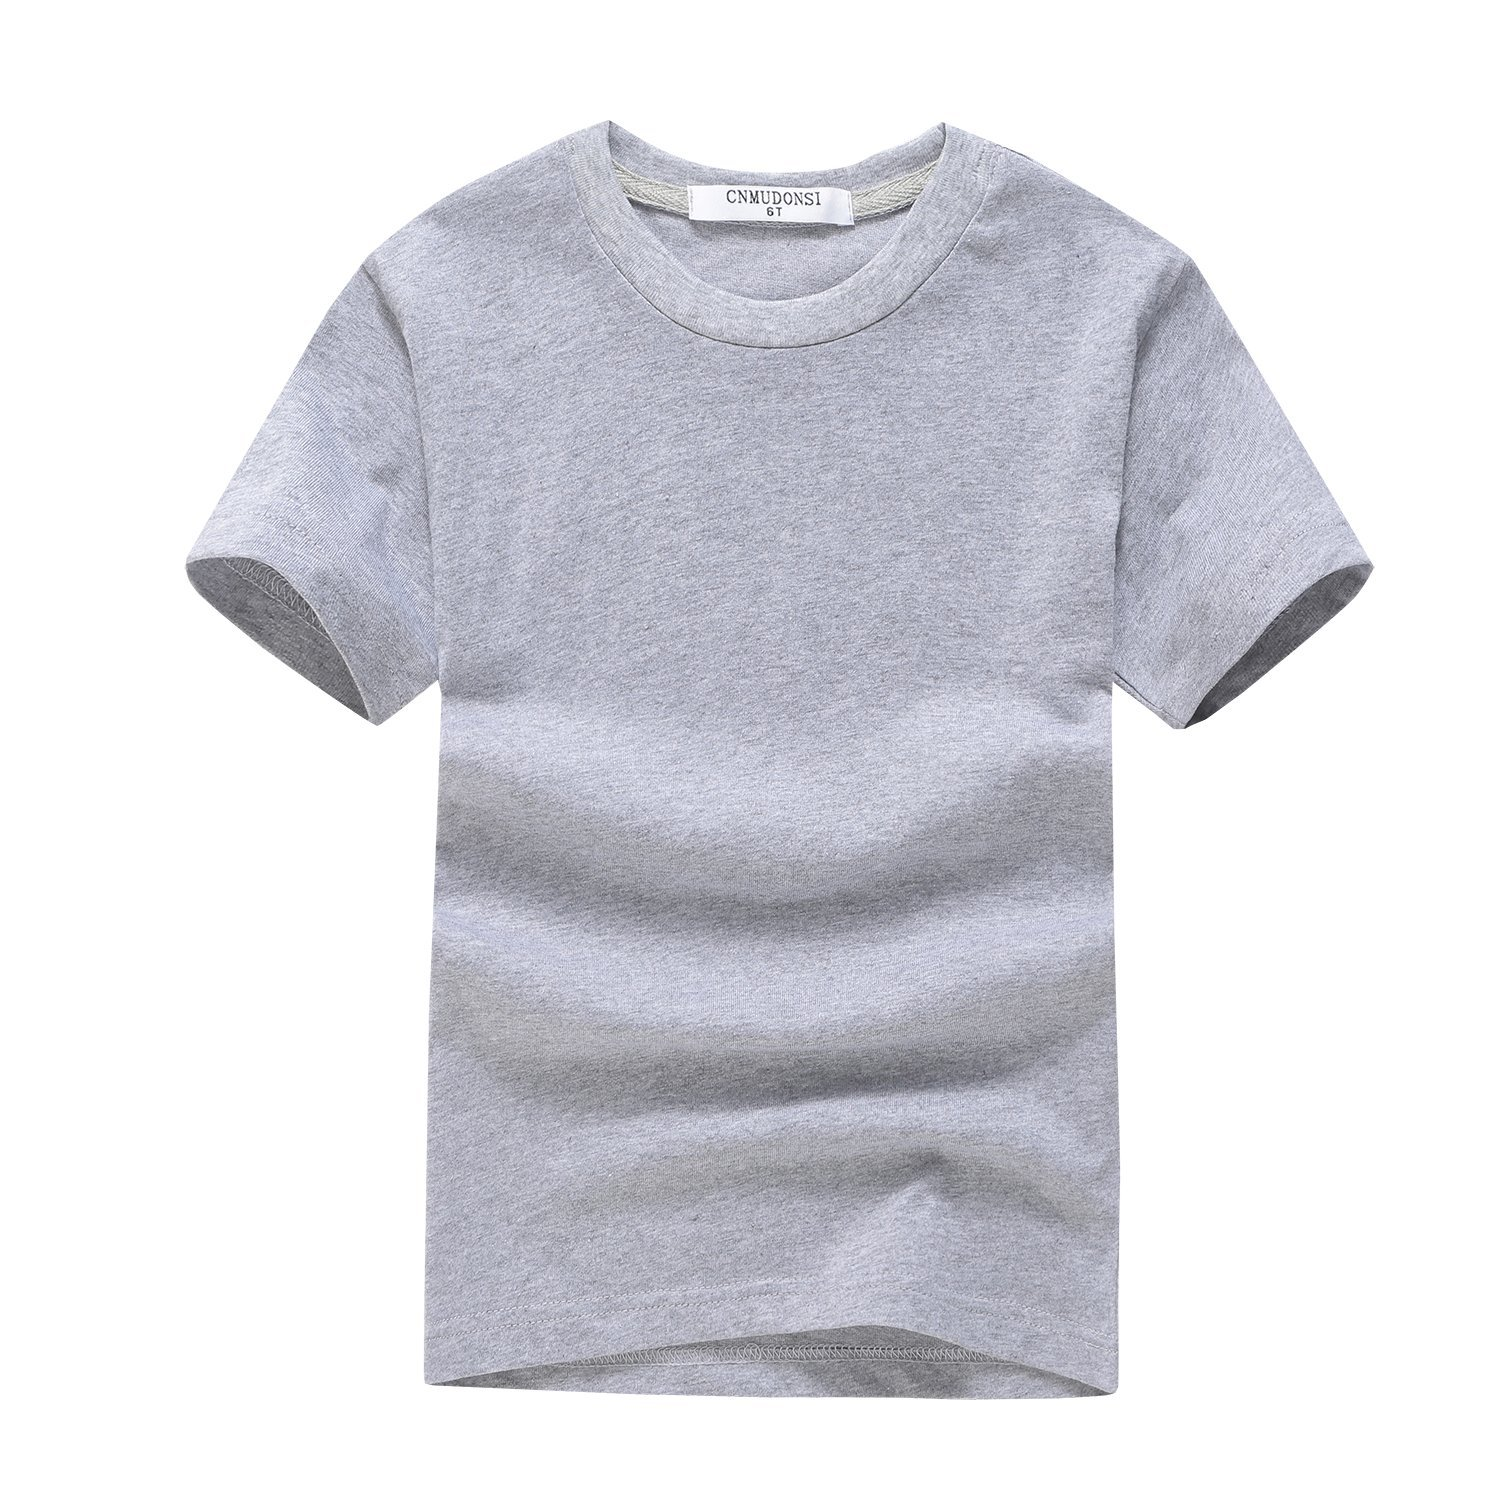 ef7c9319 ... references than age in choosing the correct size. Our kids pants are  designed to allow room for growth. Design: Solid casual short sleeve tee  shirts ...